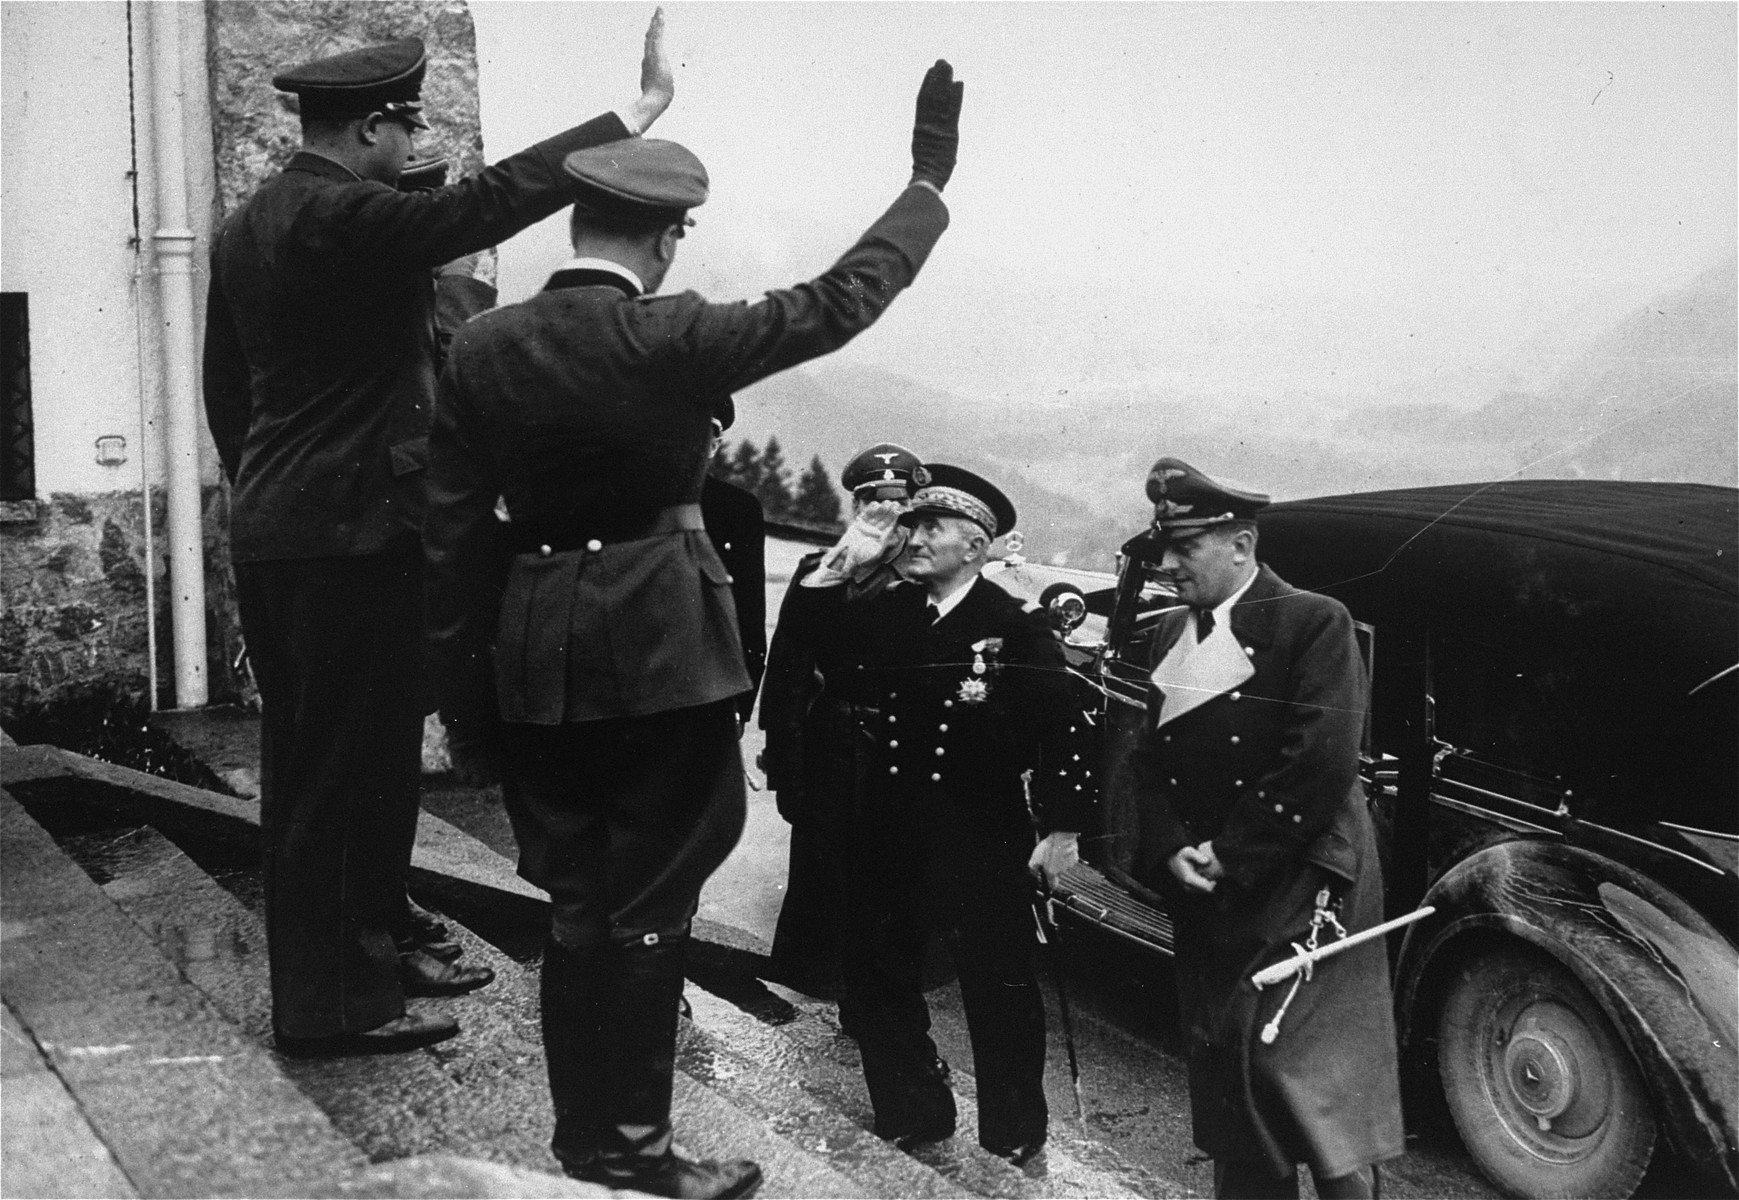 Adolf Hitler salutes Admiral Francois Darlan upon his arrival at the Berghof.   Admiral Darlan was assassinated in December 1942 by a member of the French resistance.